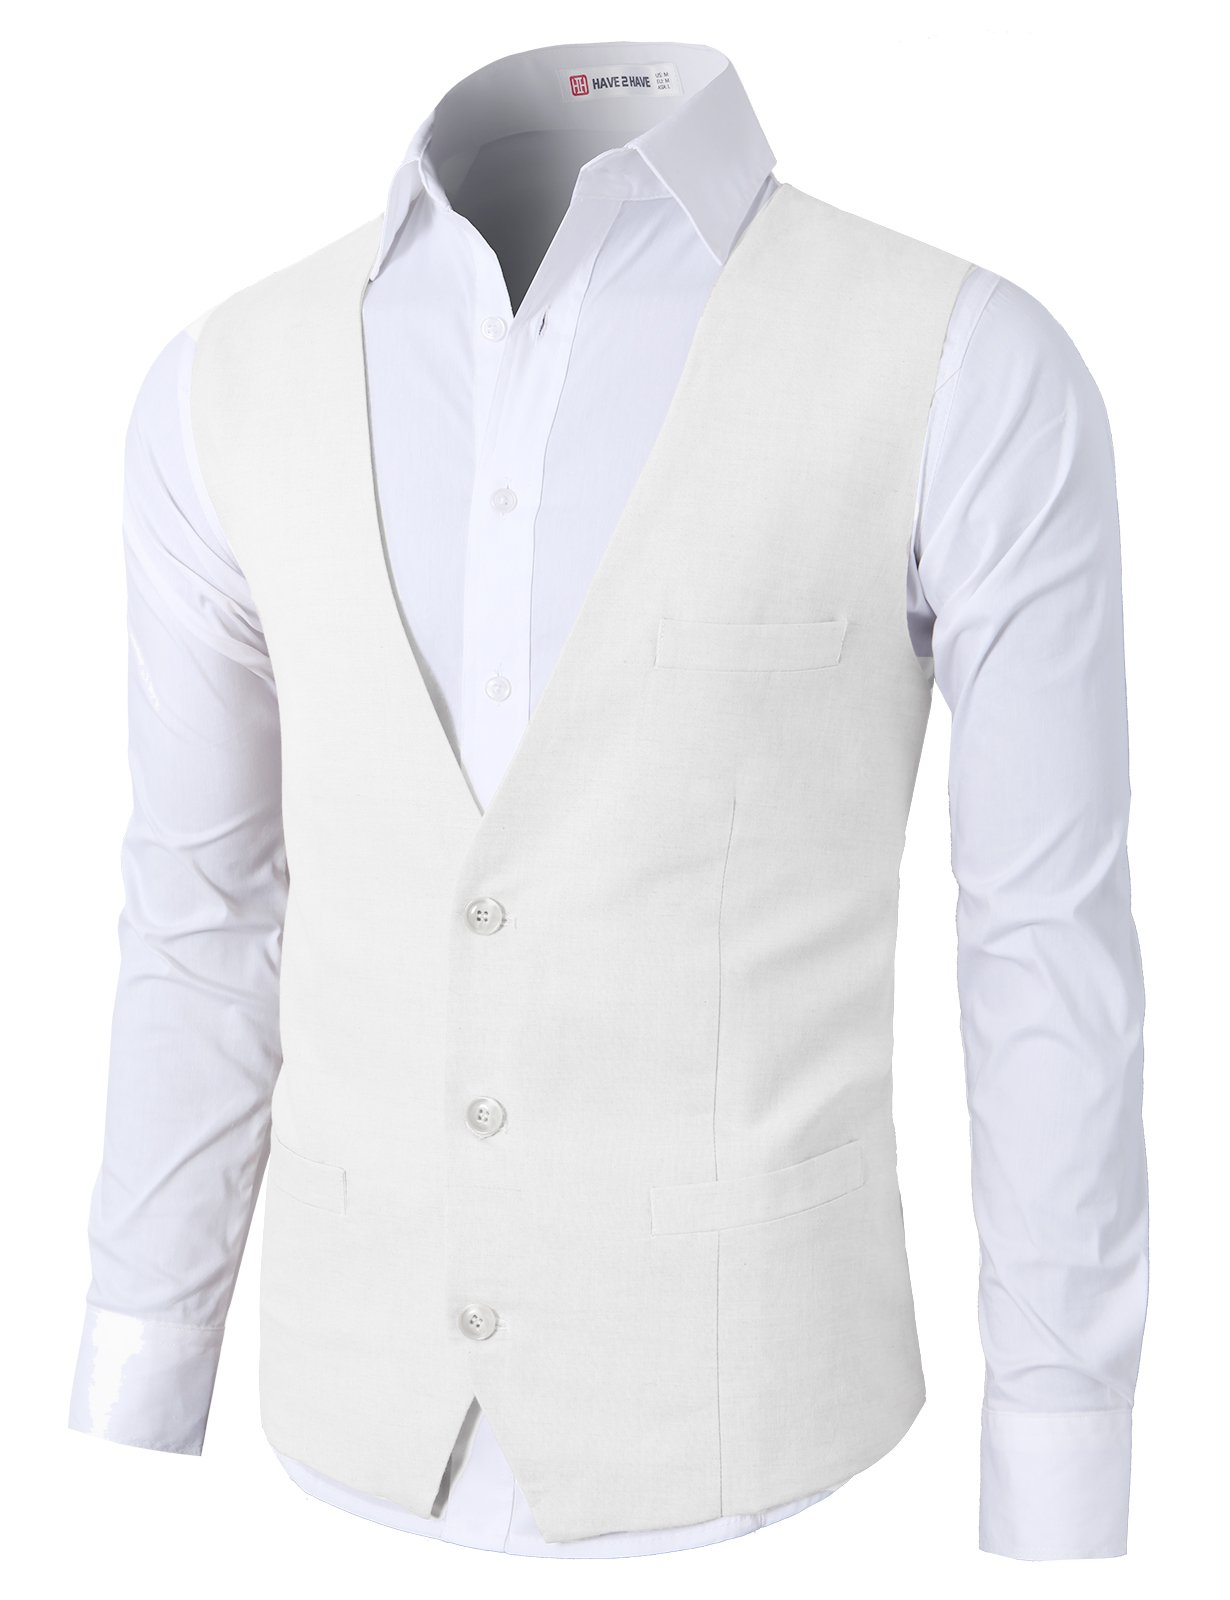 H2H Men's Fashion V-Neck Sleeveless Button Down Business Suit Vest Waistcoat White US XL/Asia 2XL (CMOV039)